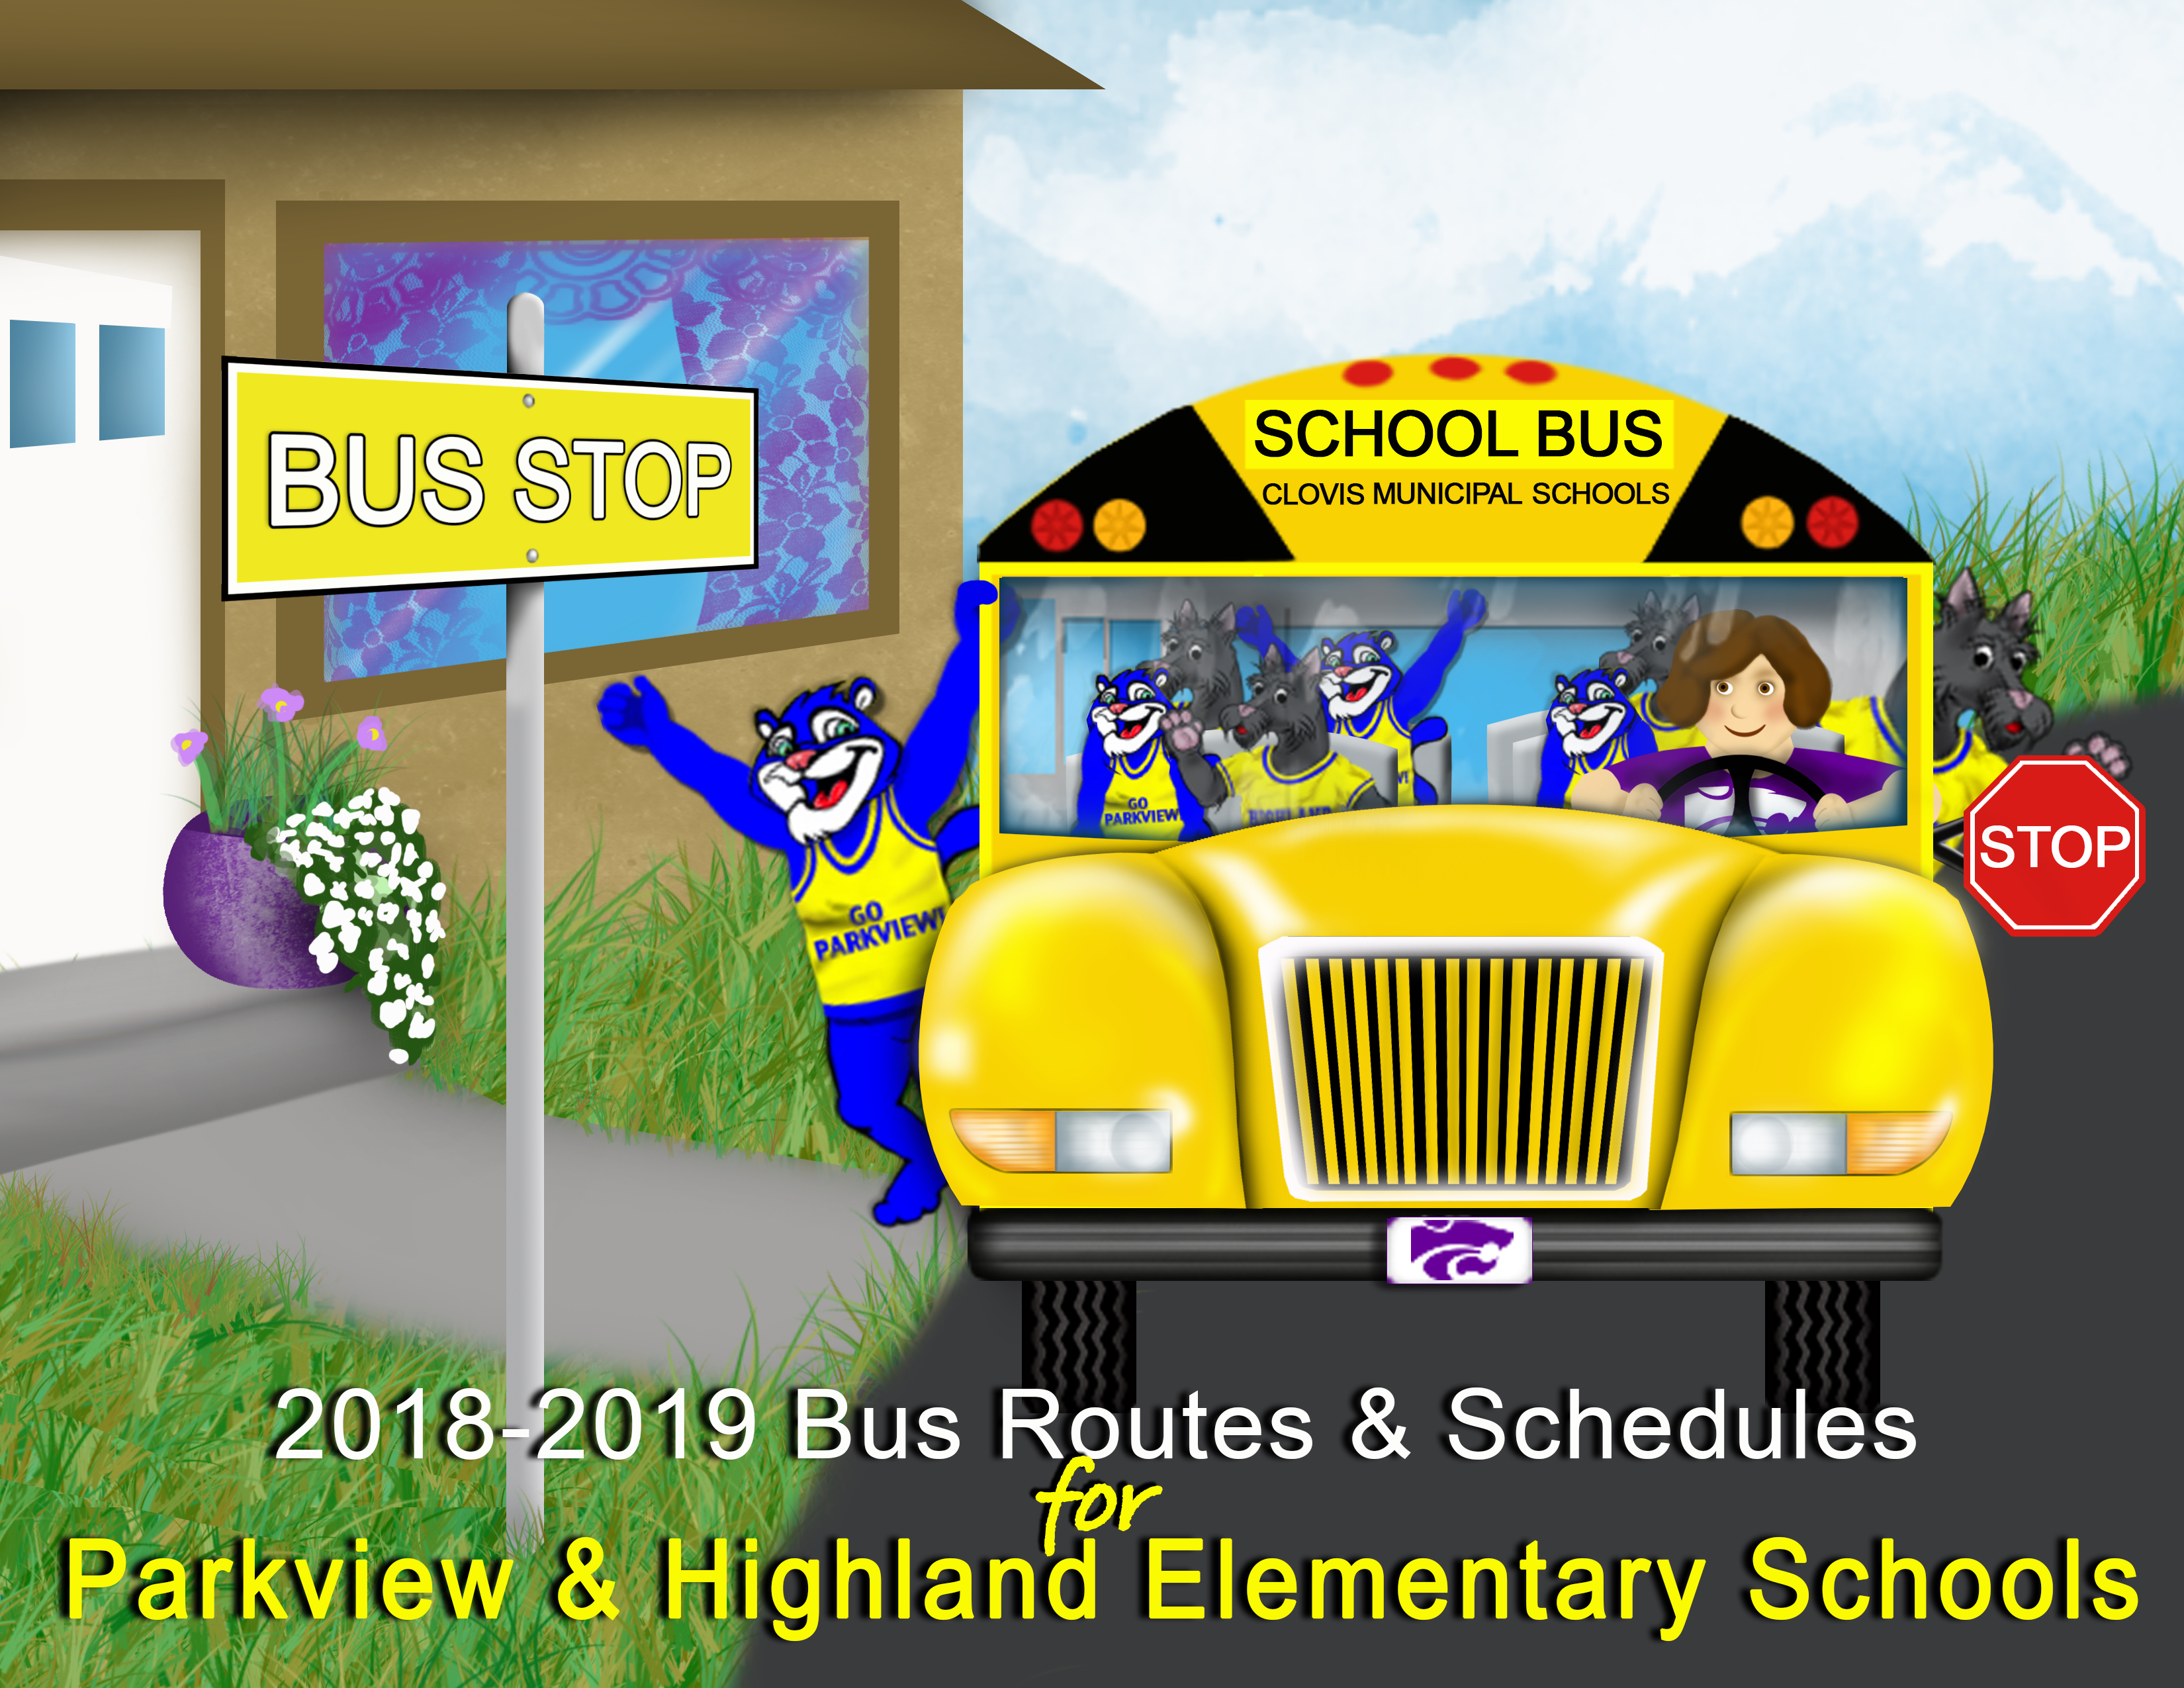 Image announcing new bus routes and schedules for Highland and Parkview